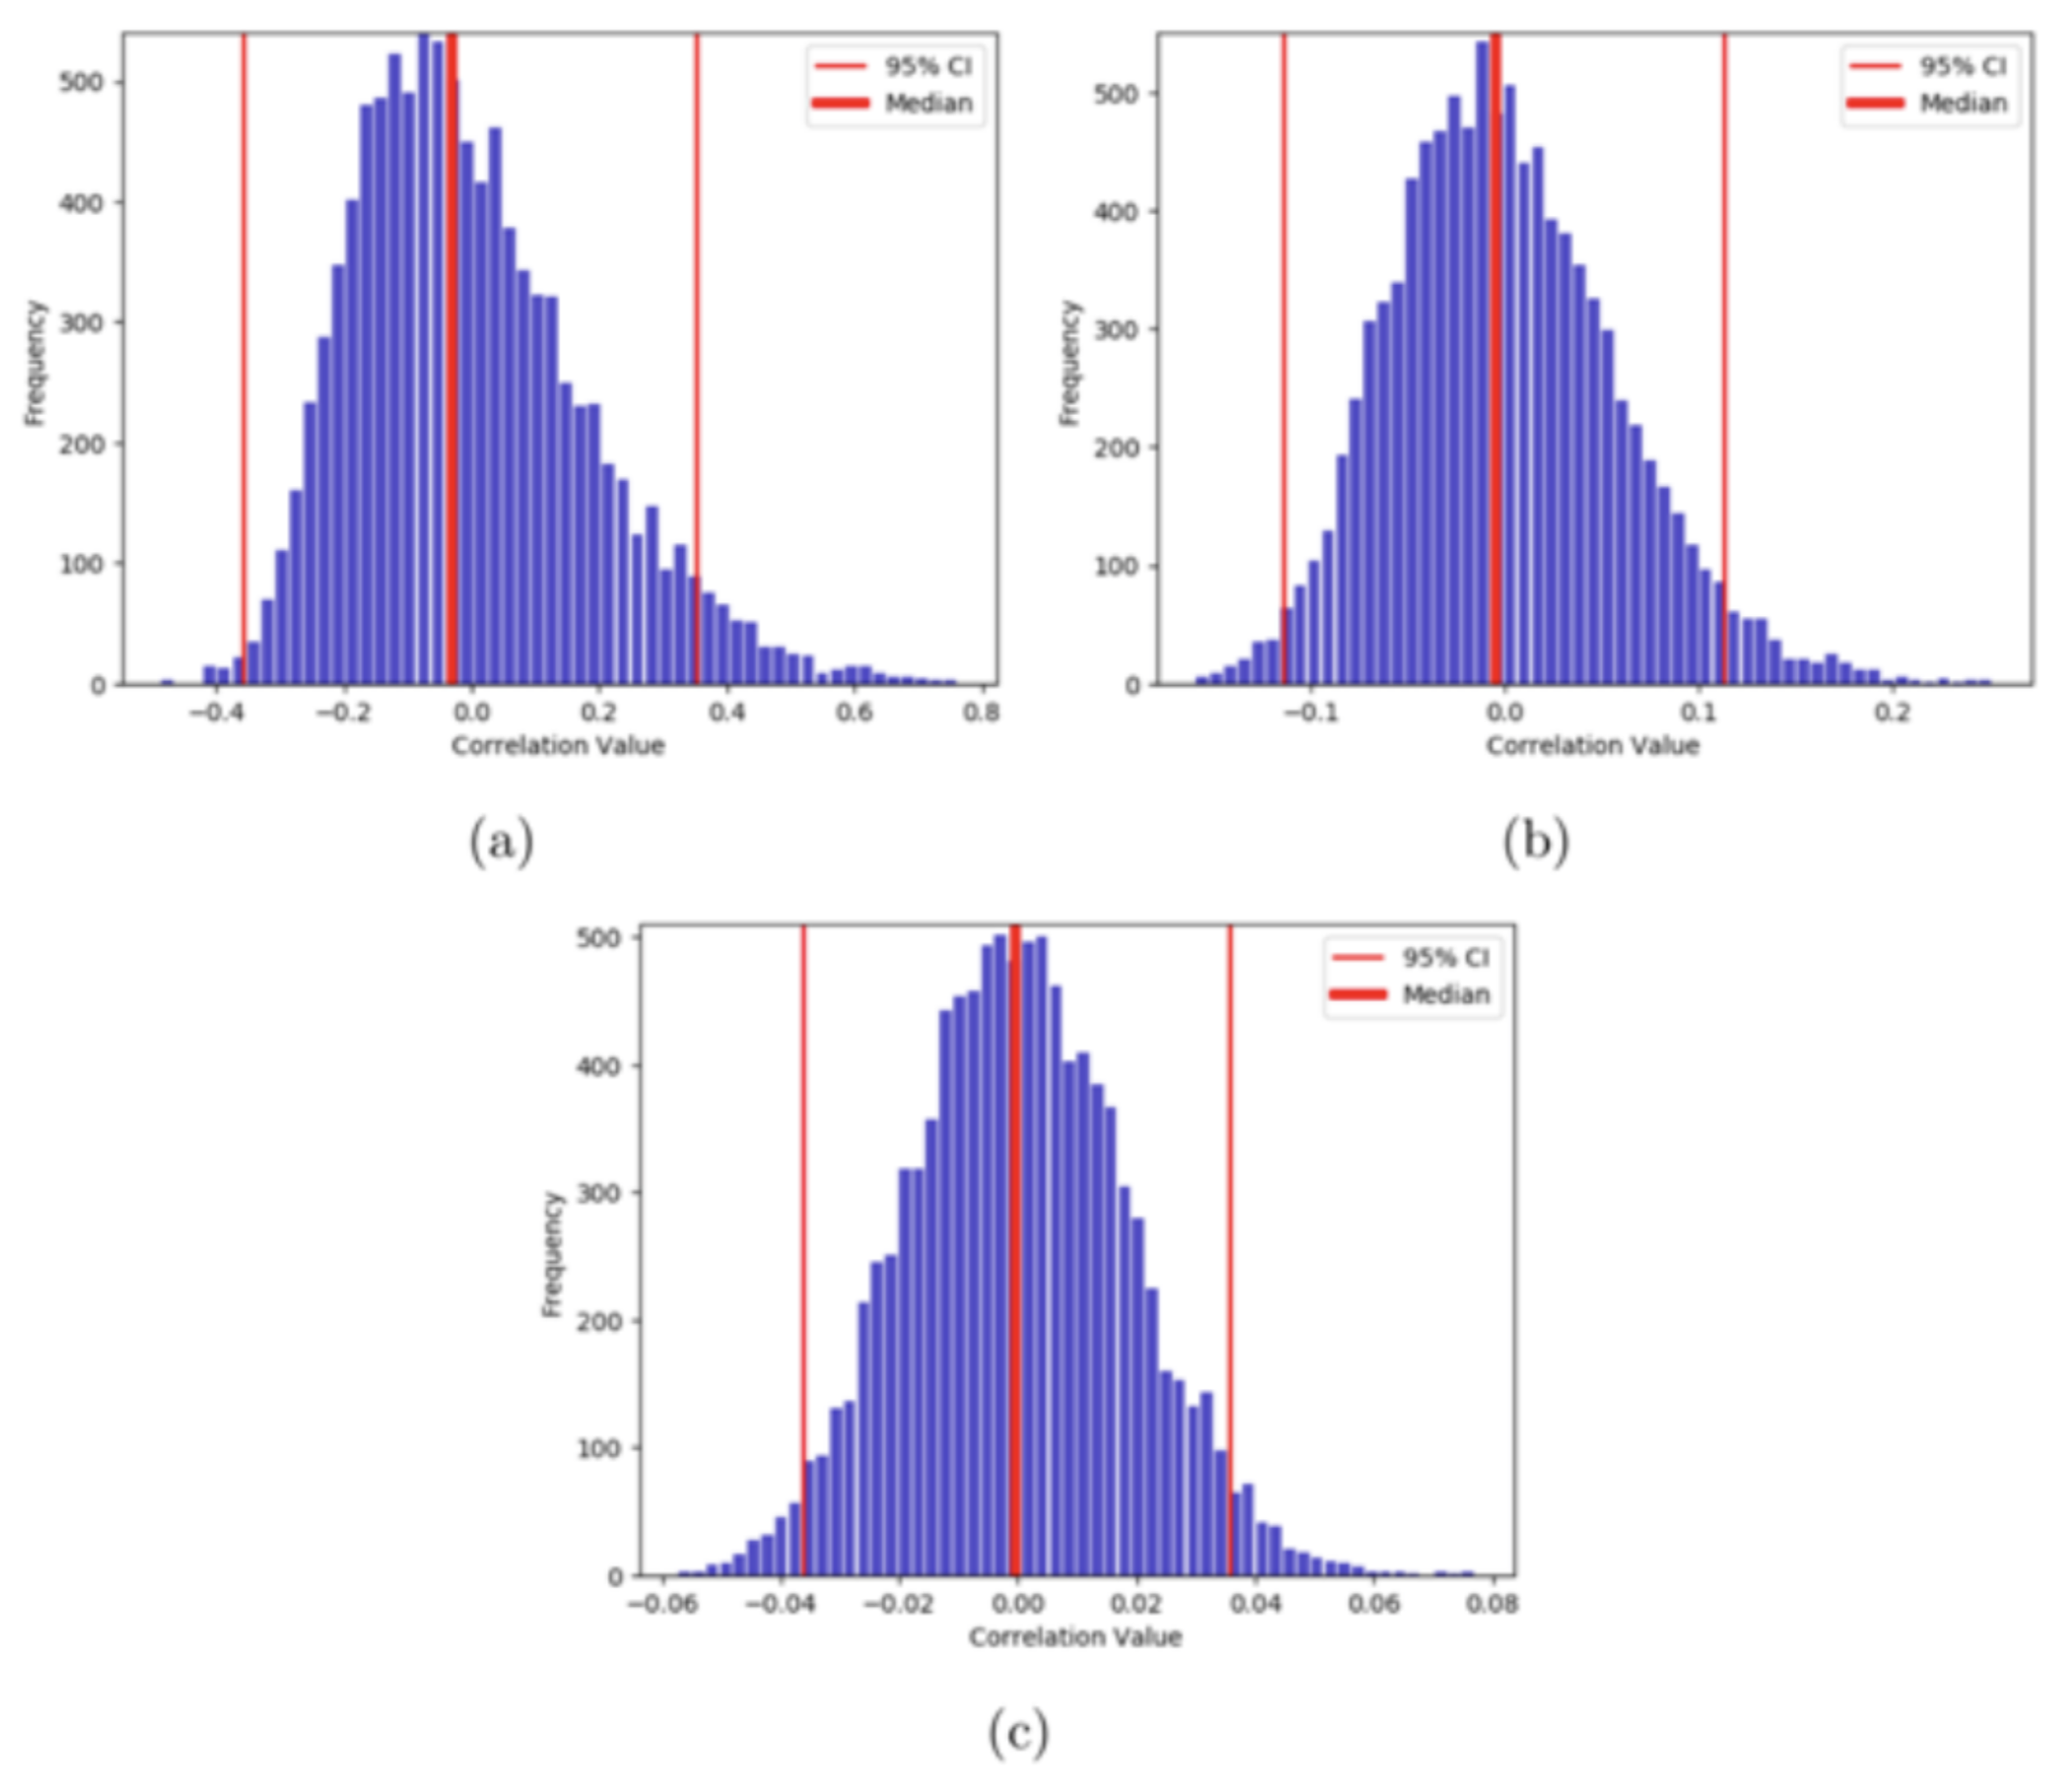 Monte-Carlo Simulations for the Pearson's correlation coefficients between two non-normal random time-series of lengths (a) 30 (b) 300 and (c) 3000 points